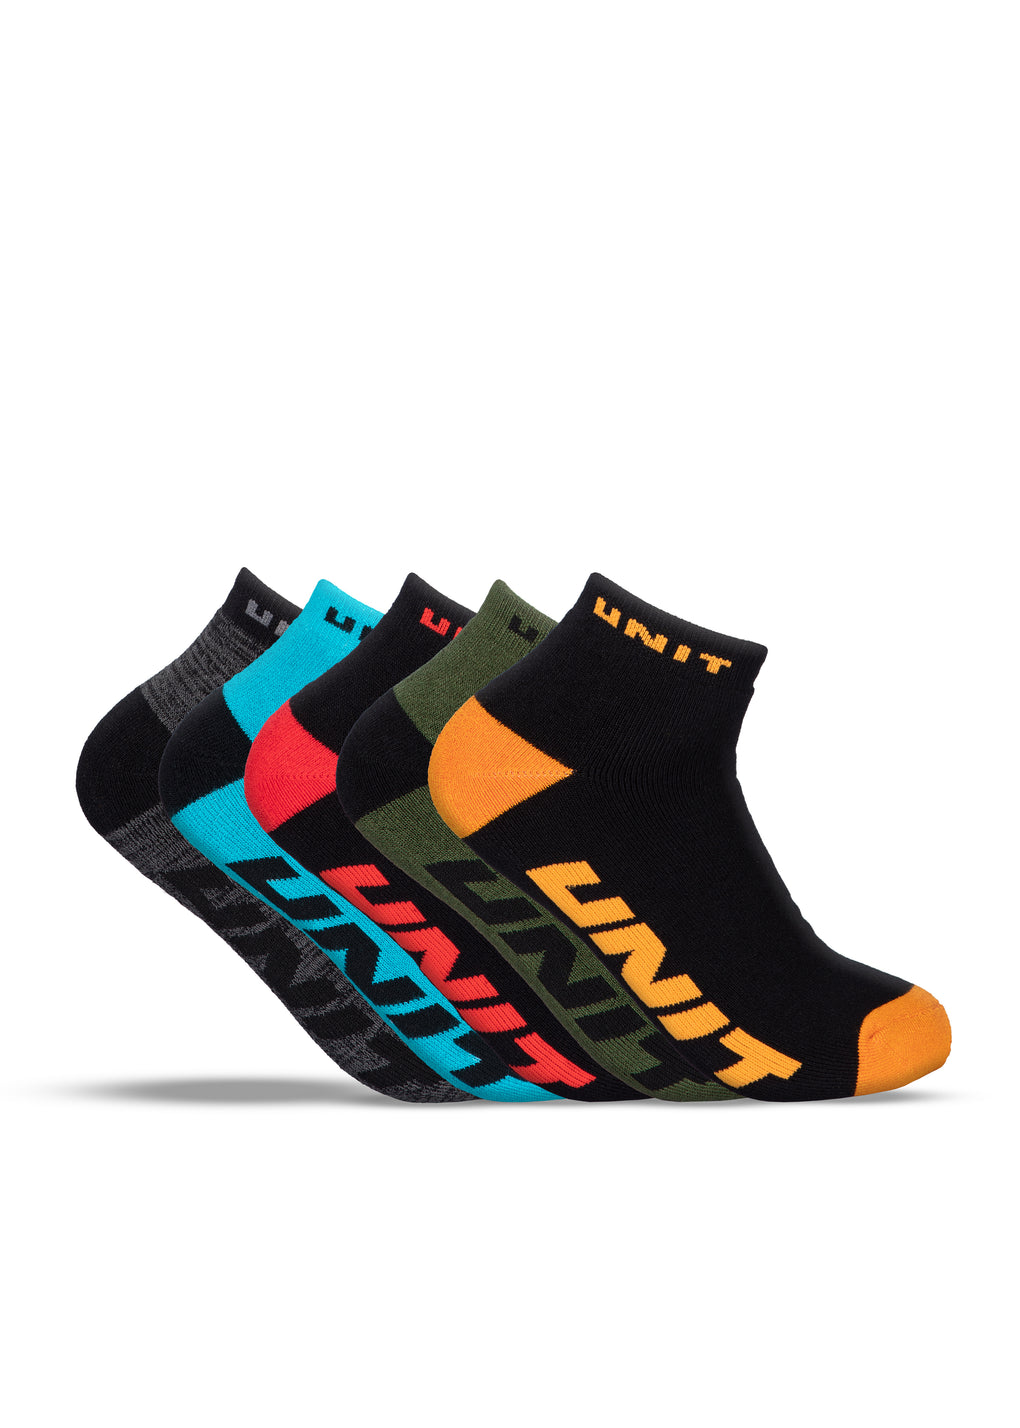 Frequency Lo Lux Socks